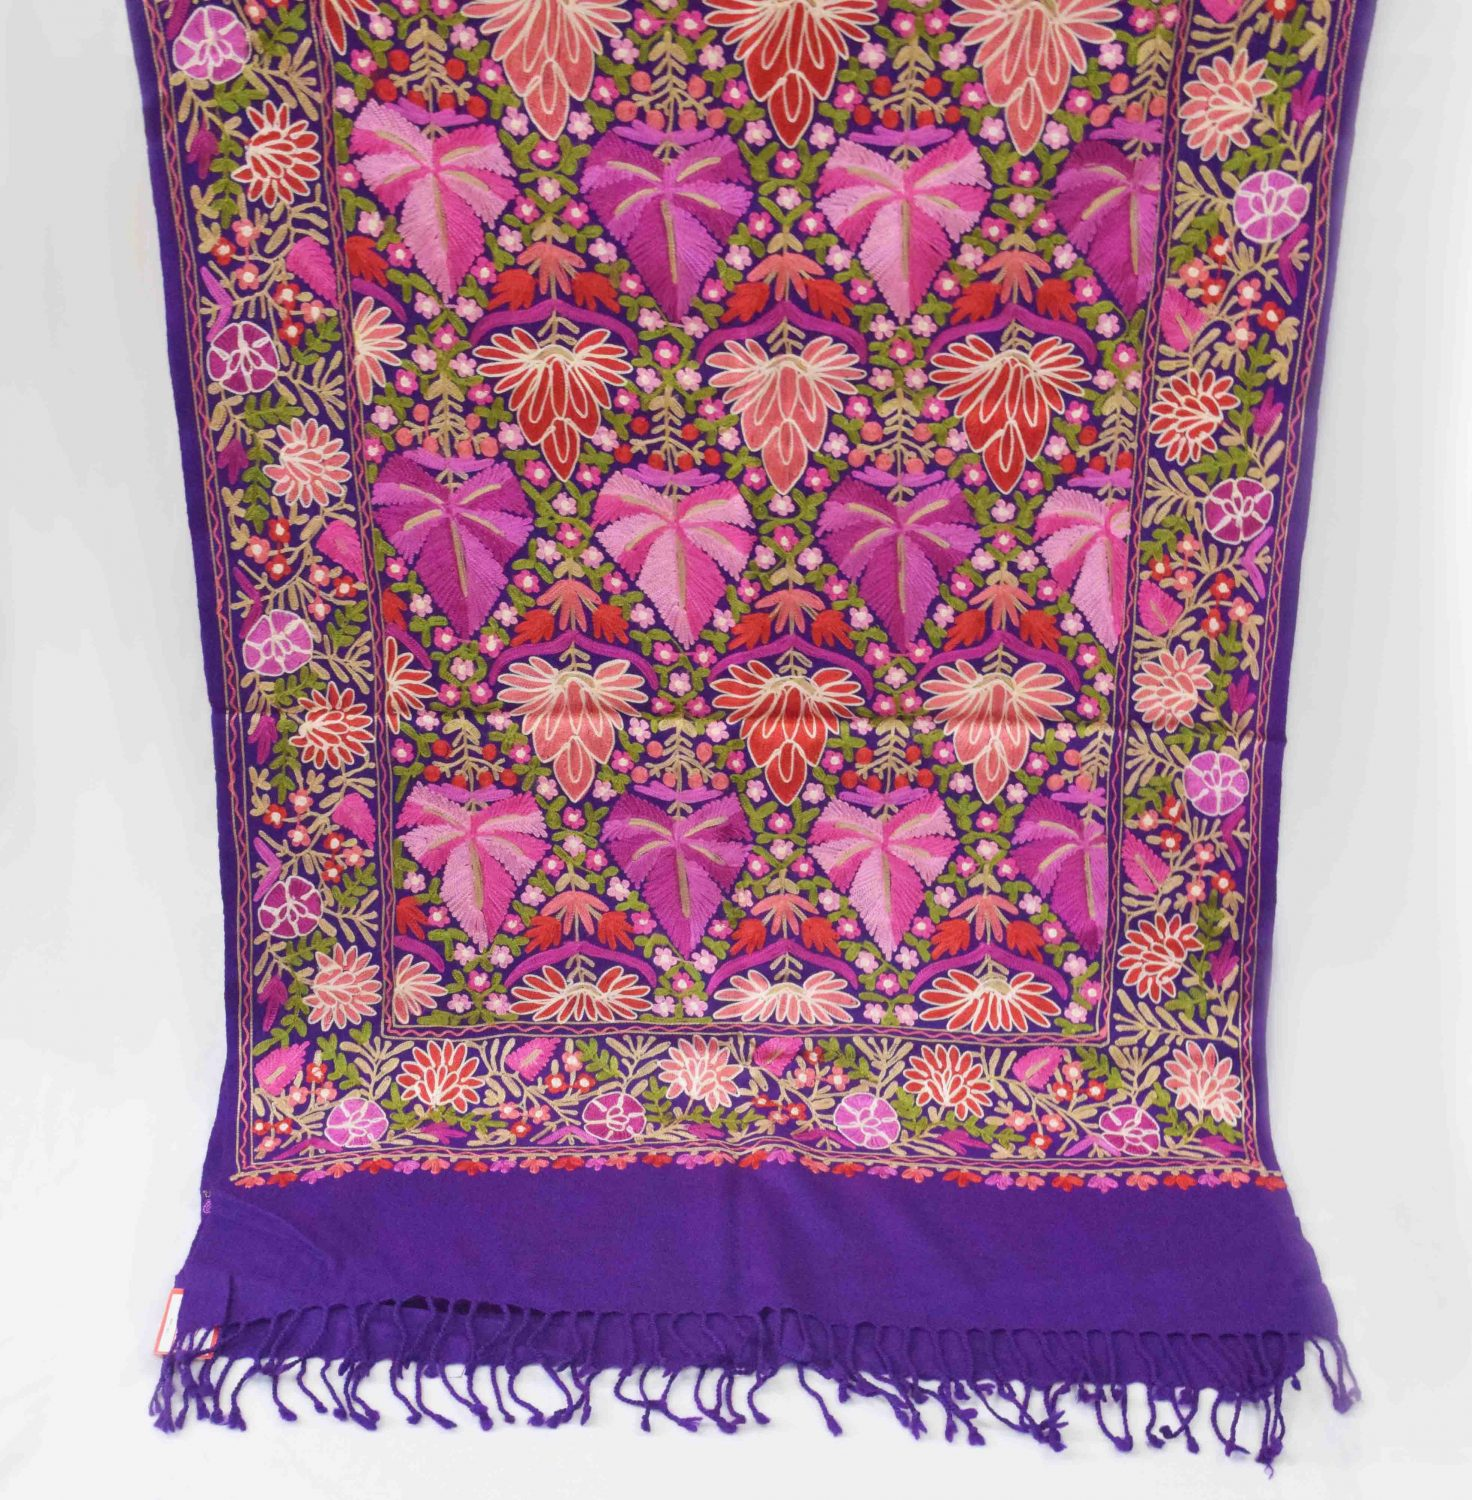 Multicolour Chinar Jaal Pashmeena stole C0472 2